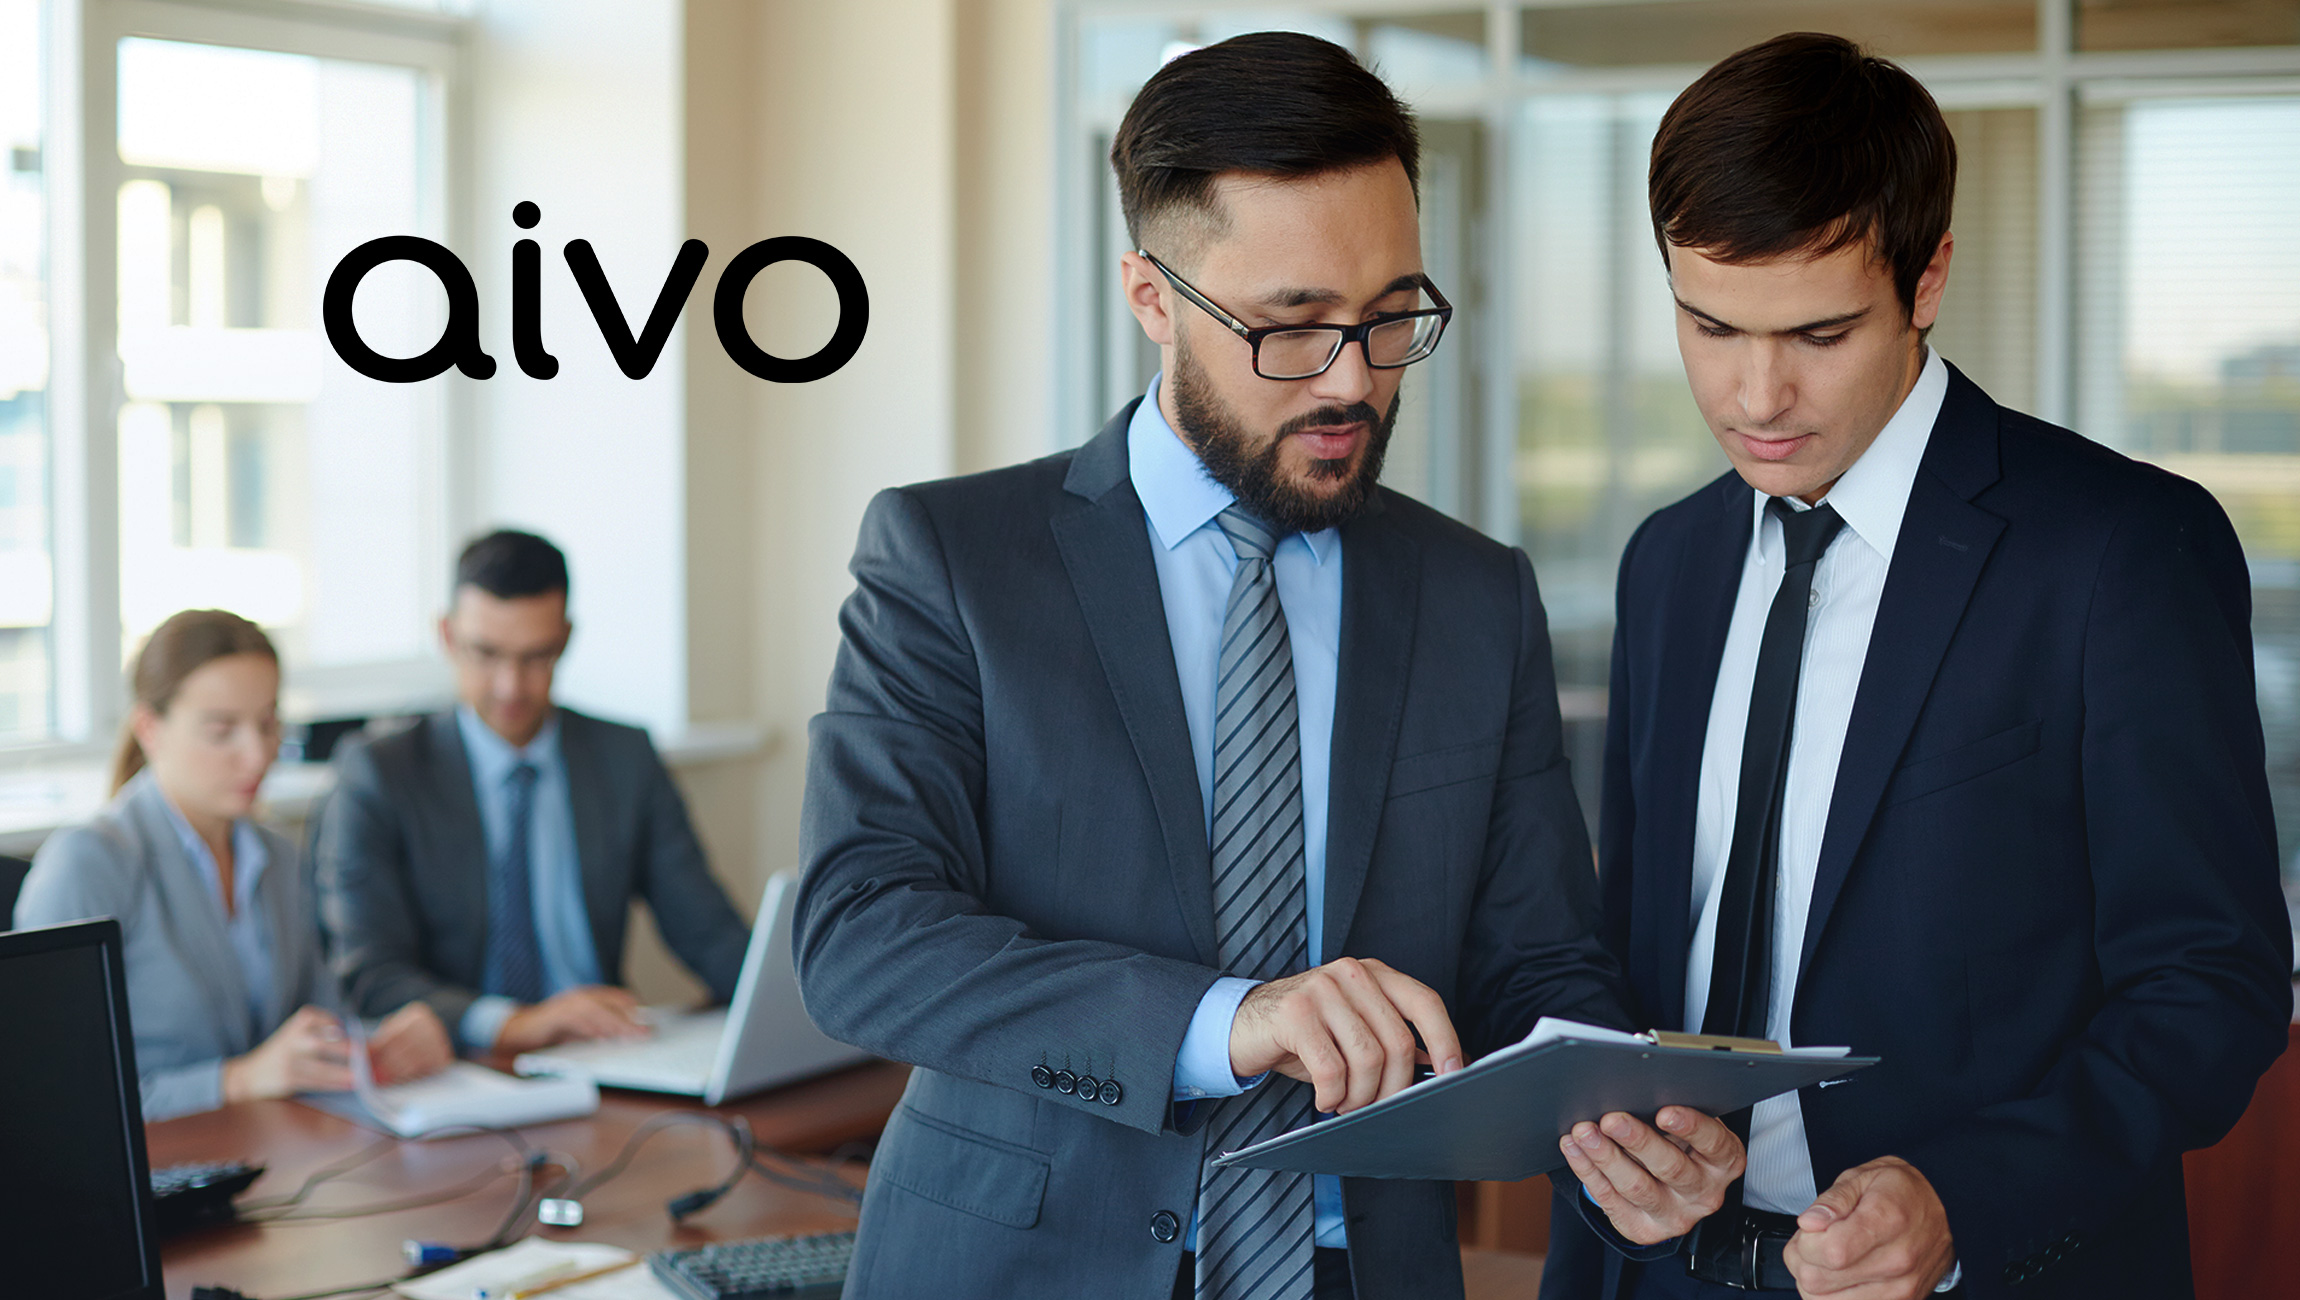 Aivo Gave 3.5 Million Hours Back to People During 2018 with Its AI Technology